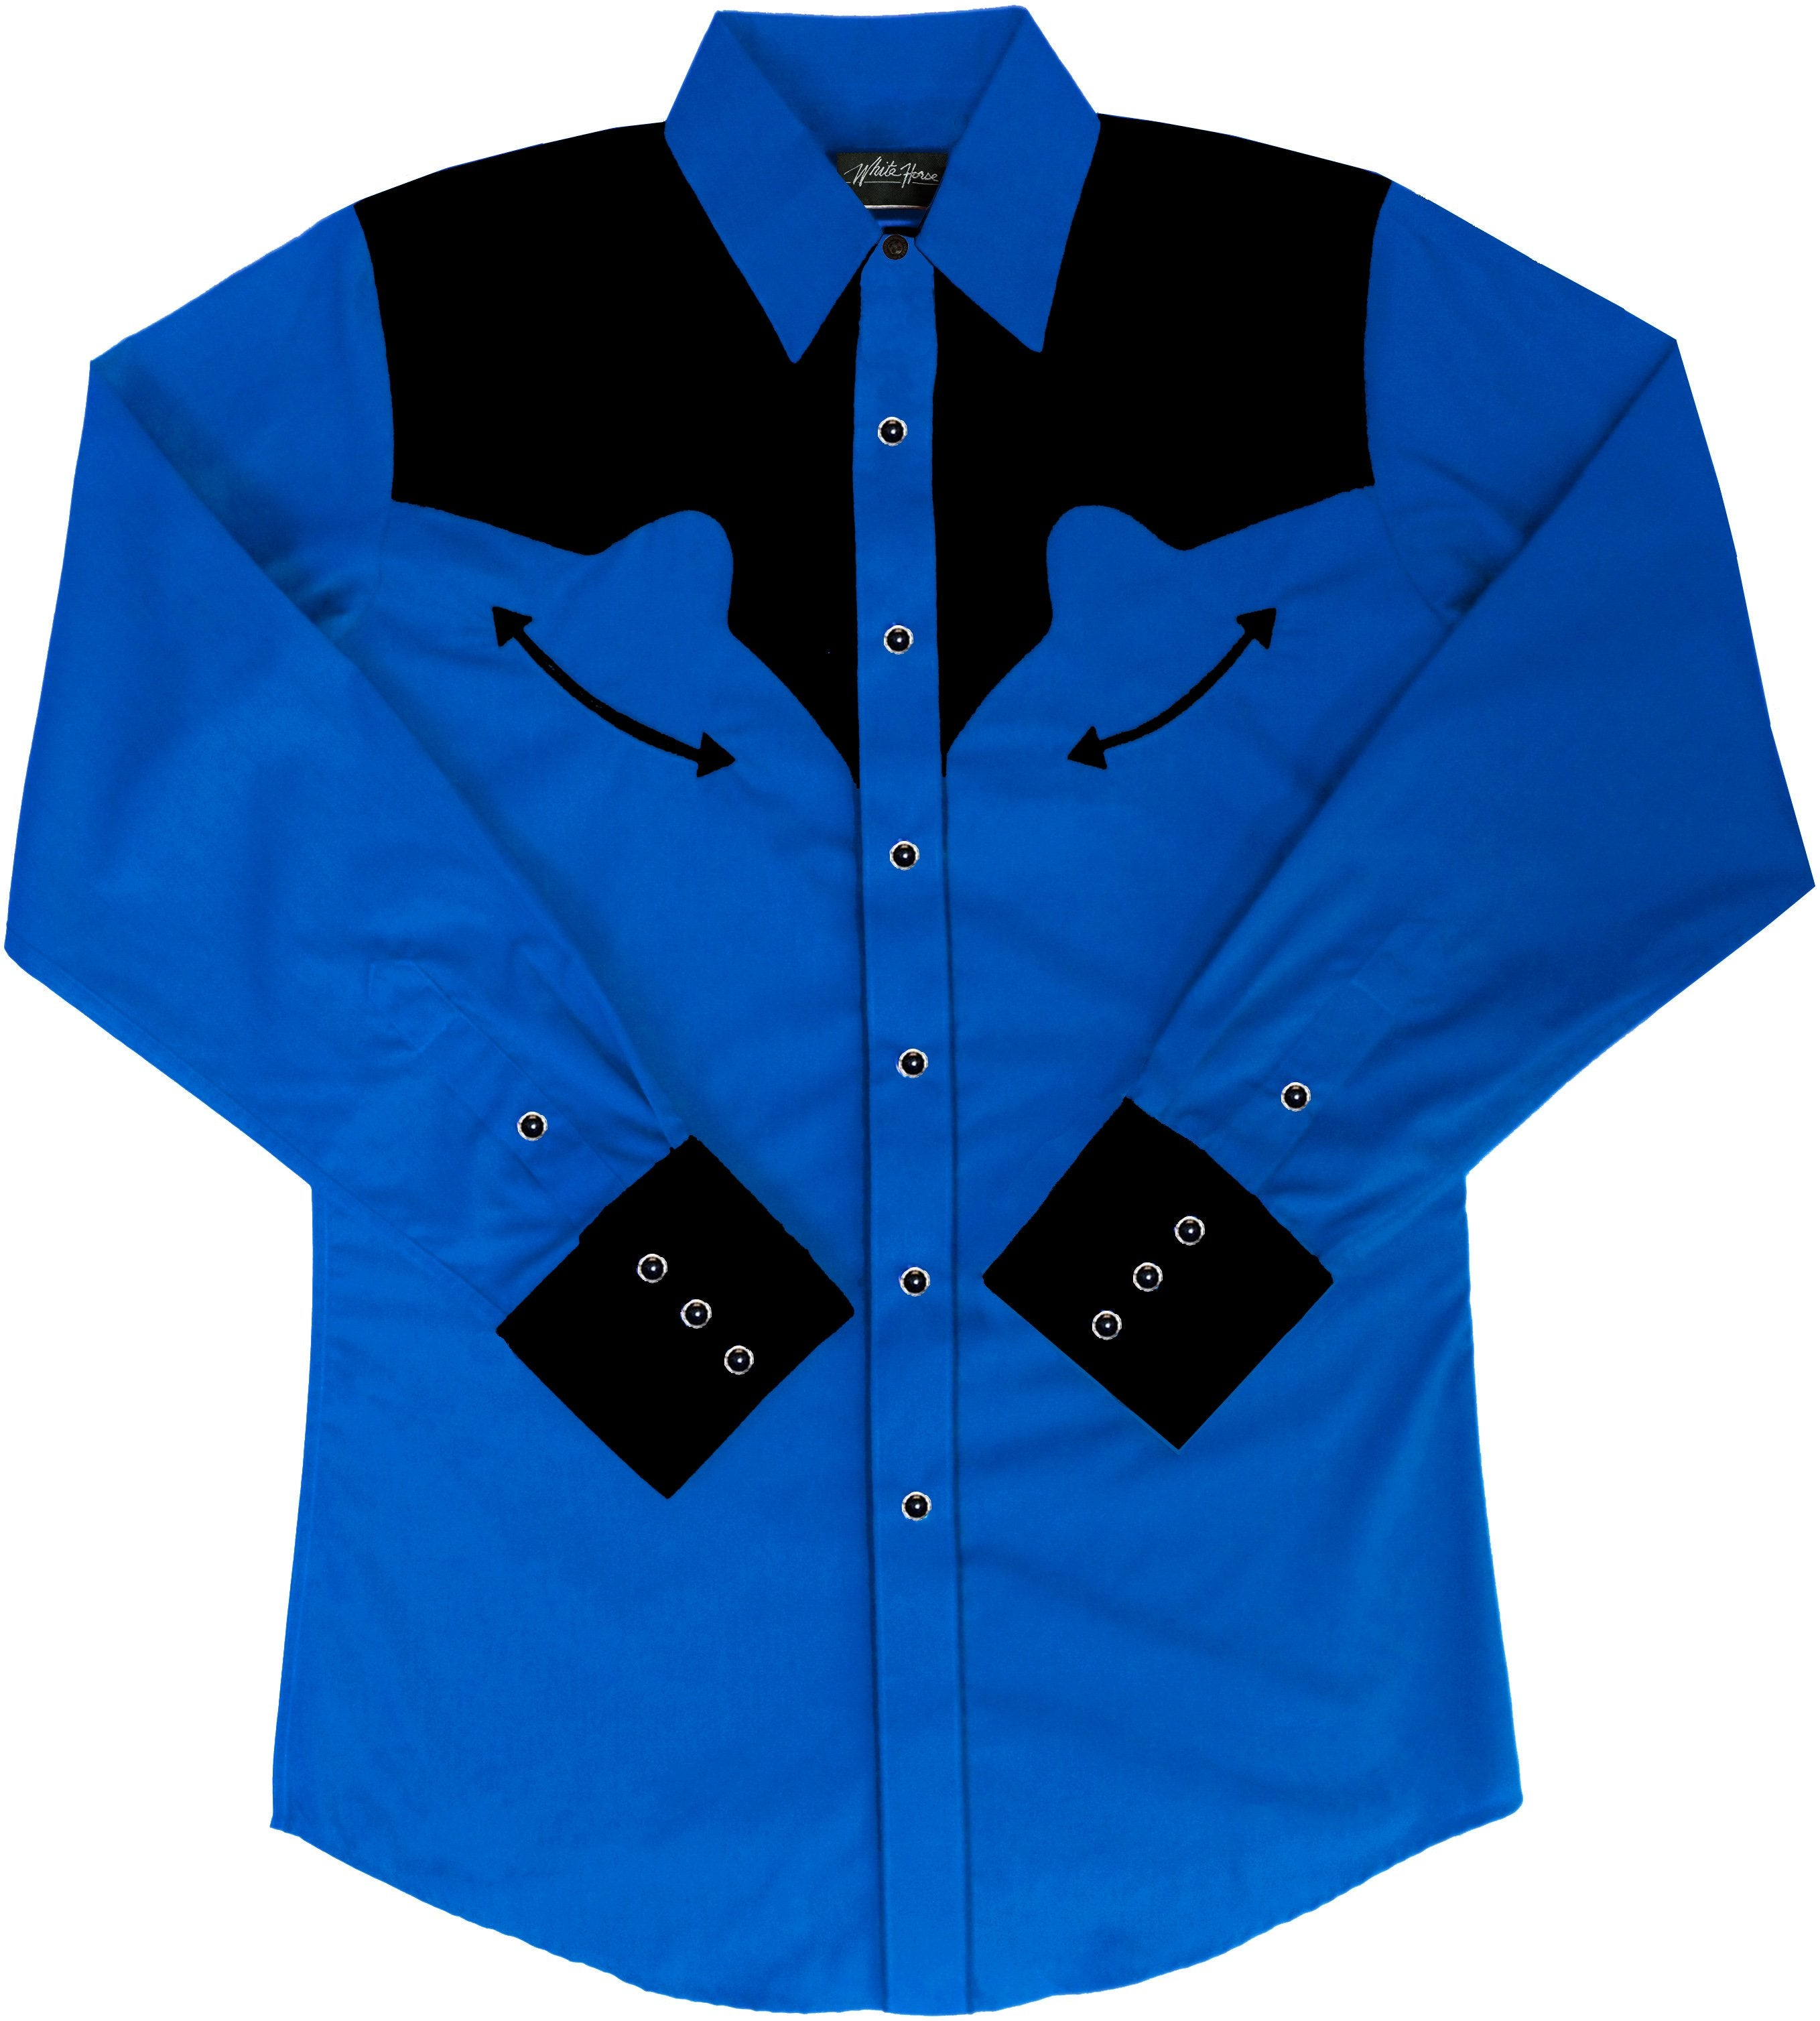 be92bf463 Embroidered Western Shirt: White Horse Men's Retro Royal and Black ...